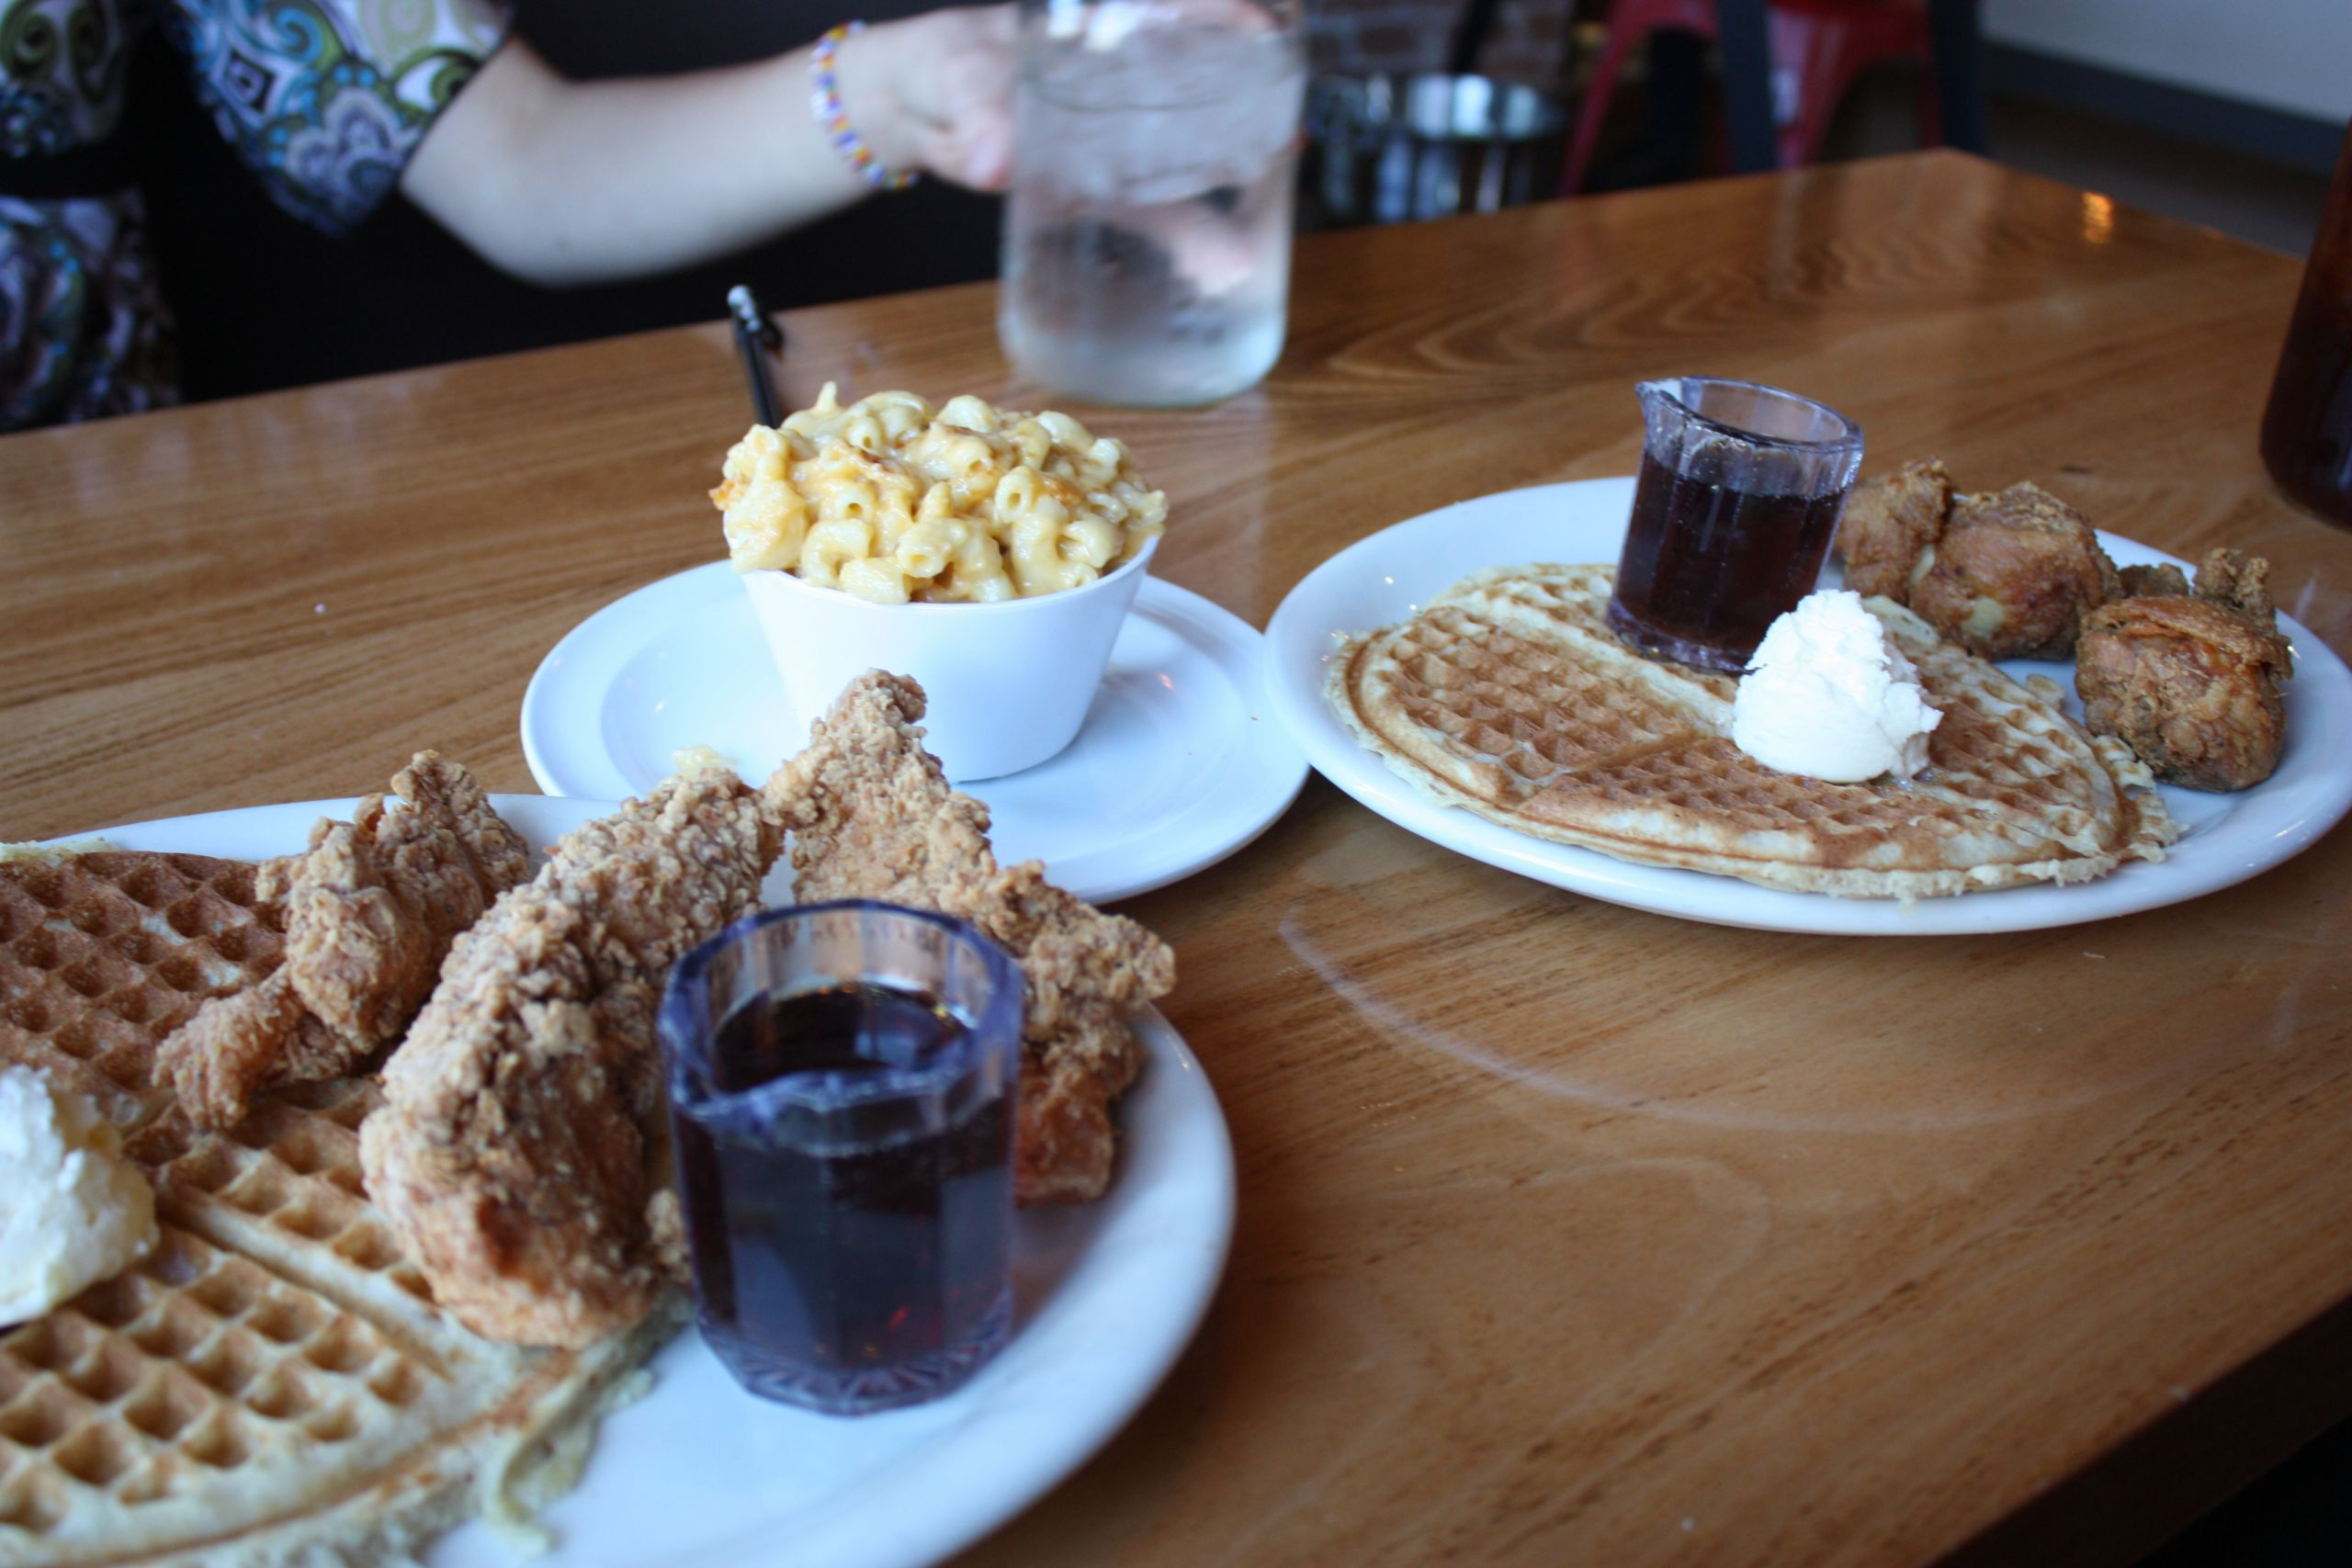 Lolo Chicken And Waffles  LoLo's Chicken and Waffles